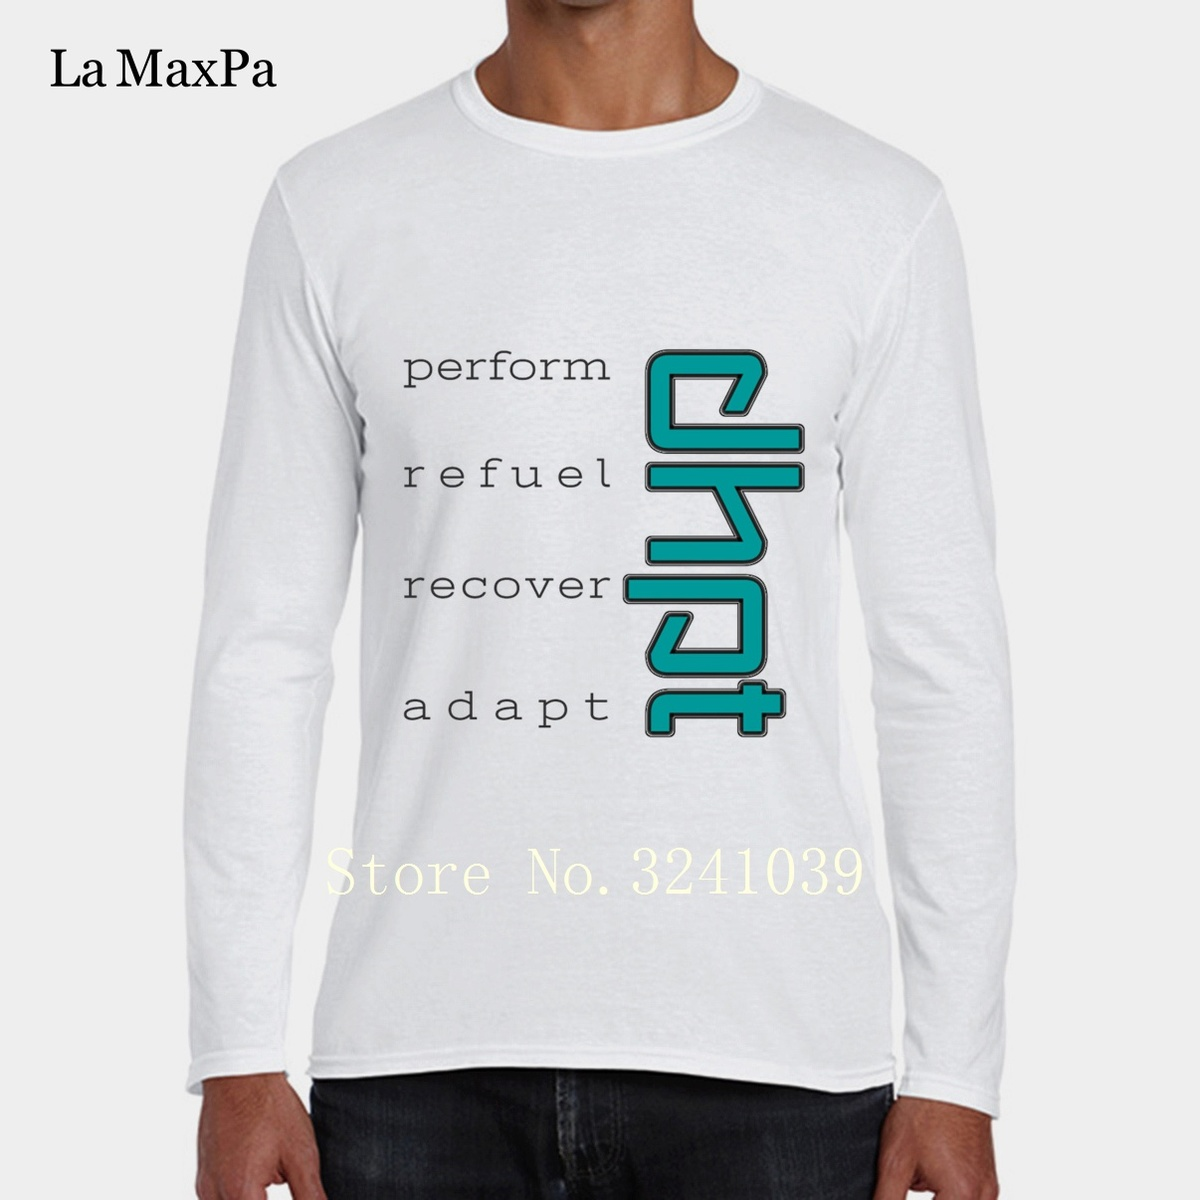 Blue Dhpt Perform Refuel Recover Adapt Fun Men Tee Shirt Outfit winter Style T-Shirt Man Clothes Round Collar Tshirt Large